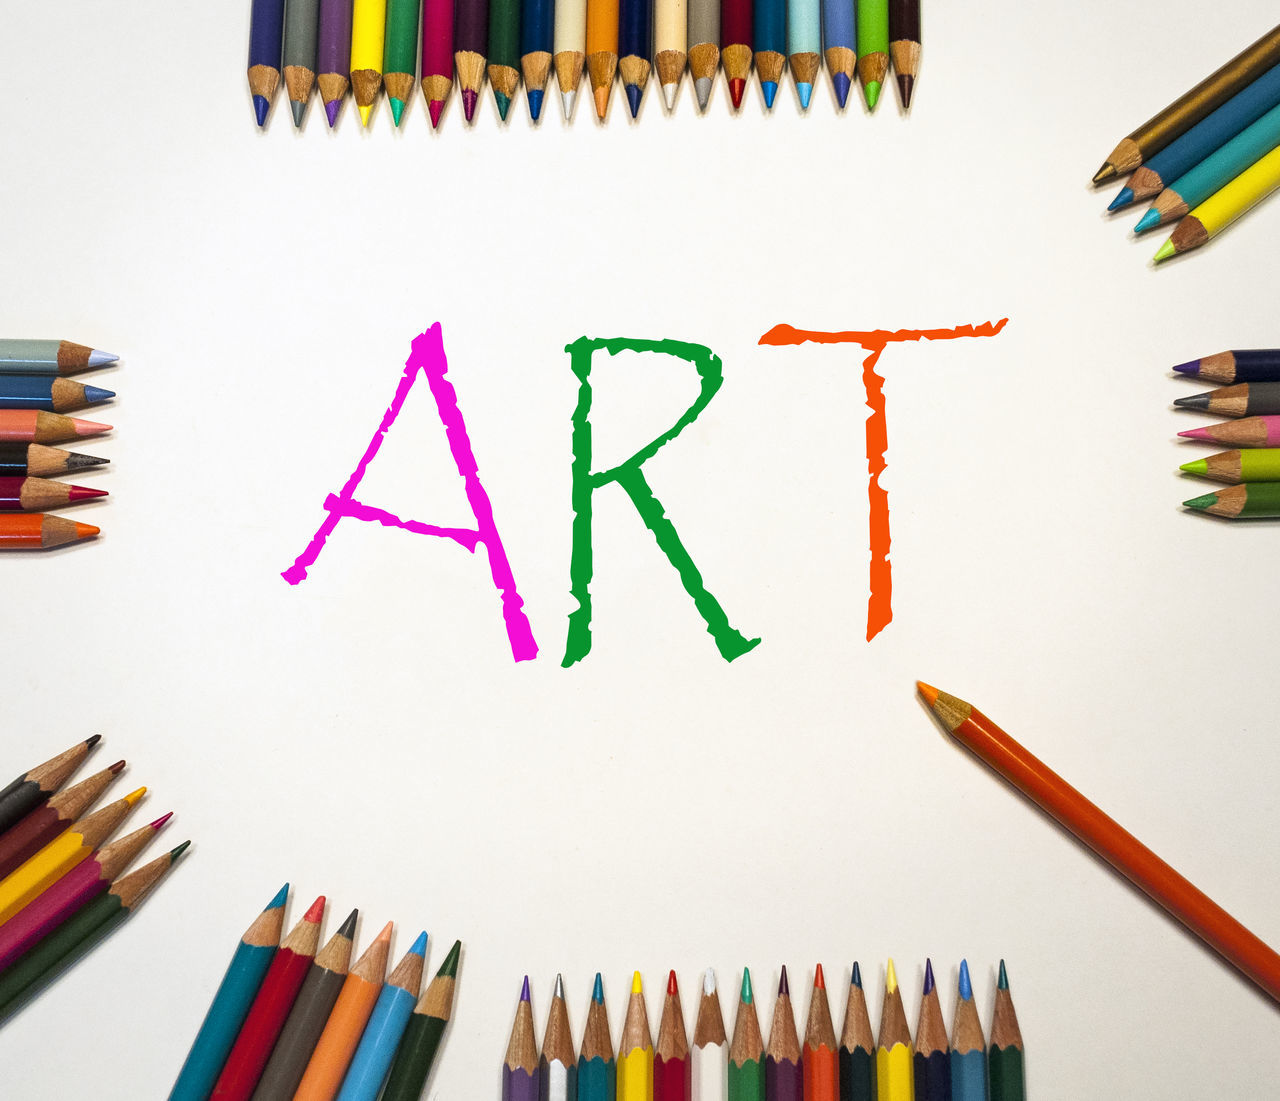 Art And Craft Arts Culture And Entertainment Close-up Colored Pencil Colorful Craft Drawing Education Indoors  Large Group Of Objects Multi Colored Office Supply Pencil Still Life Variation White Background